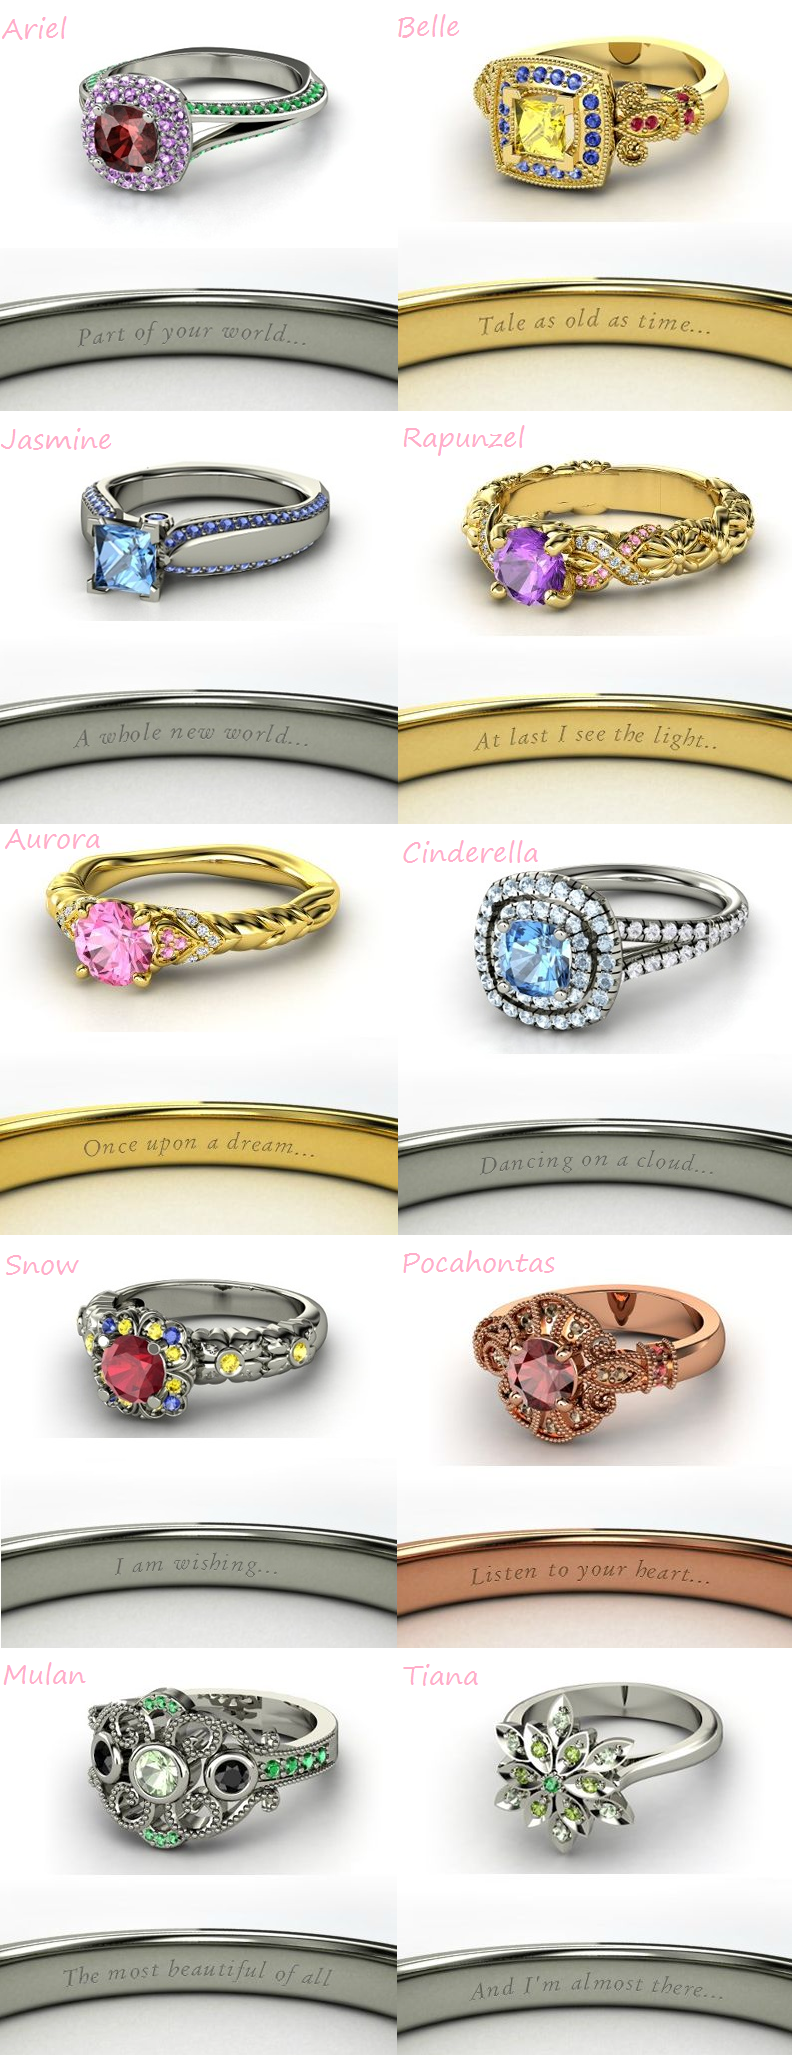 Merveilleux I Love Mulan And Cinderellau0027s Ring Disney Inspired Rings. I Want Tale Old  As Time On My Engagement Or Wedding Ring :) So Romantic